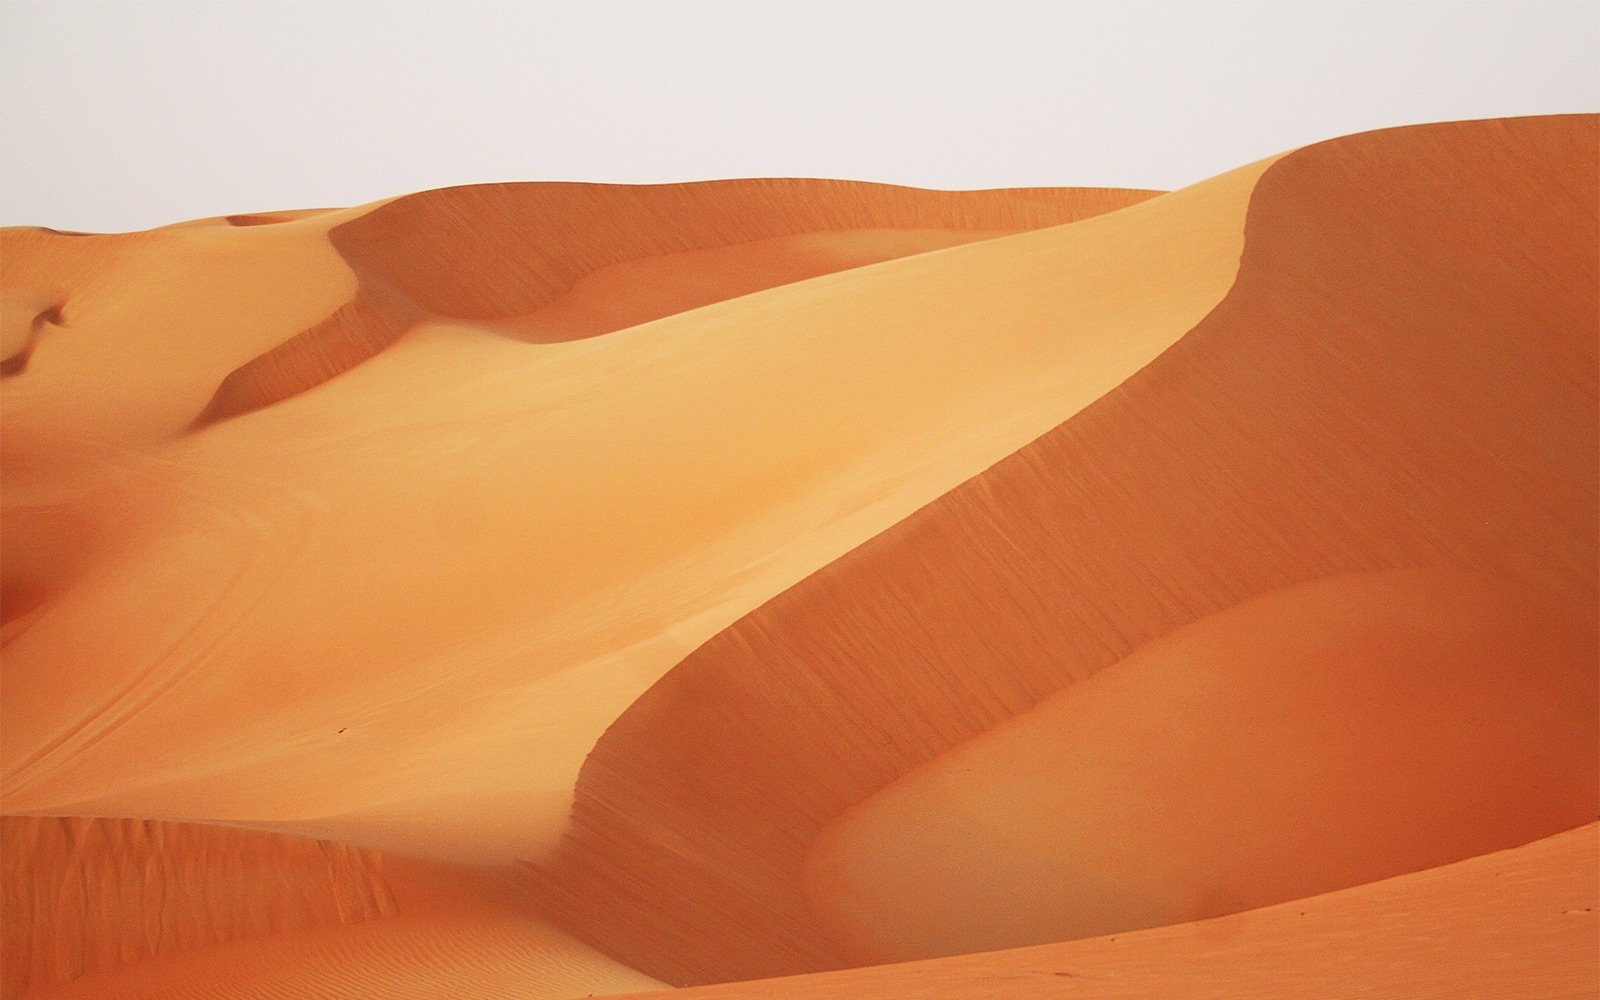 Big Red Sand Dune, Dubai